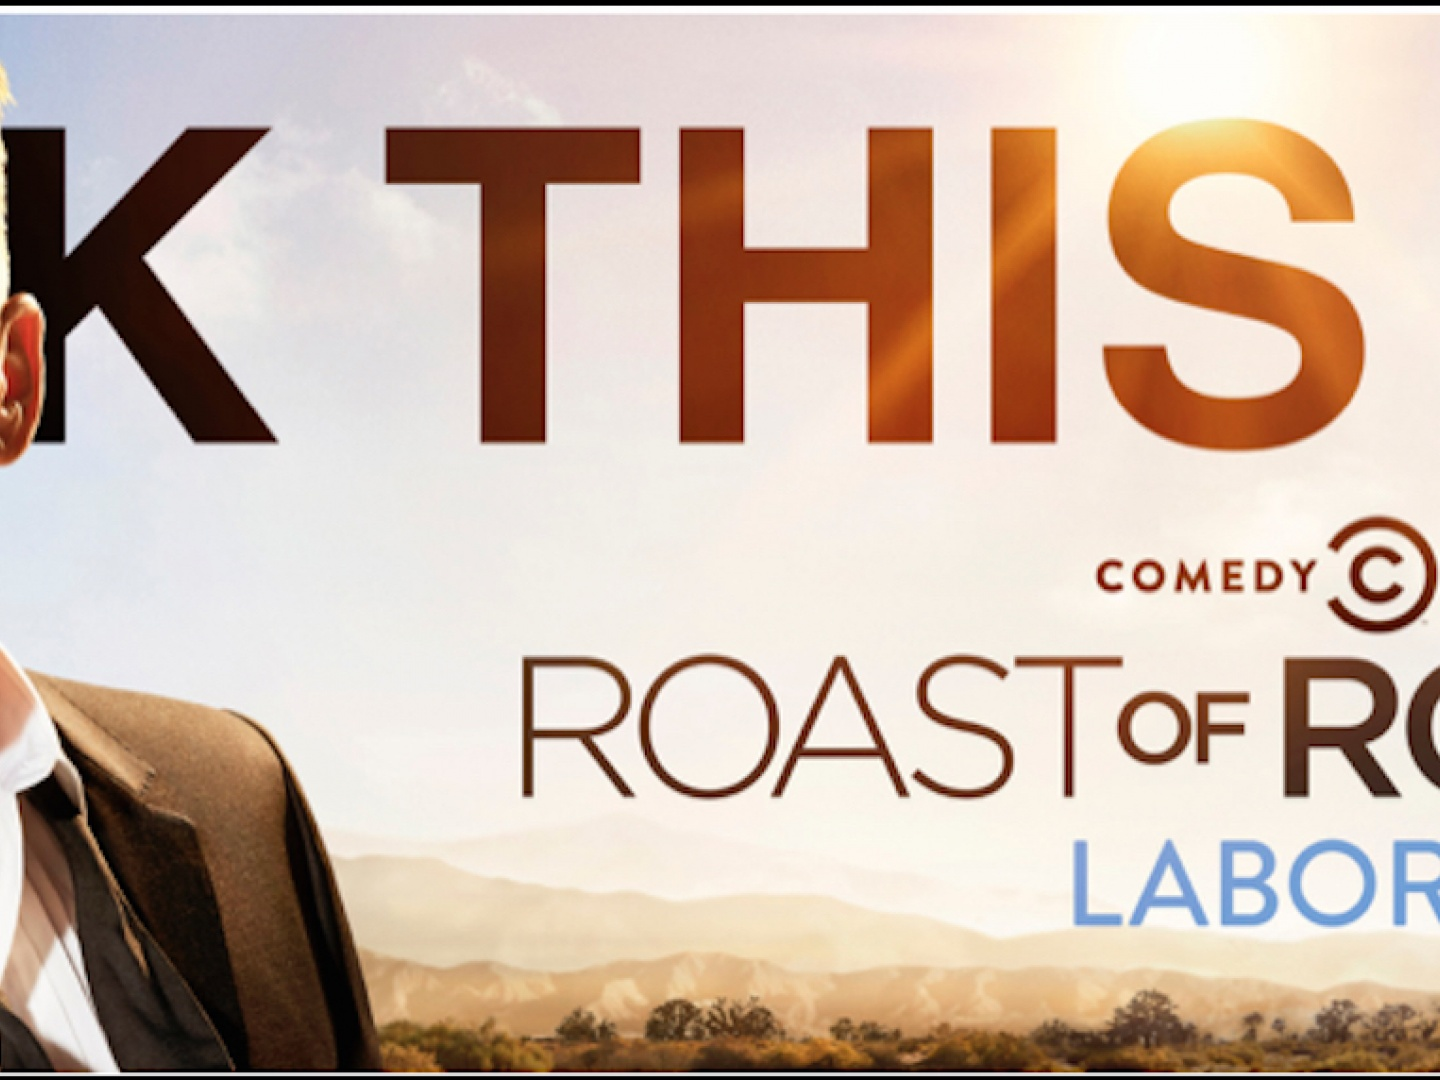 The Comedy Central Roast of Rob Lowe Thumbnail